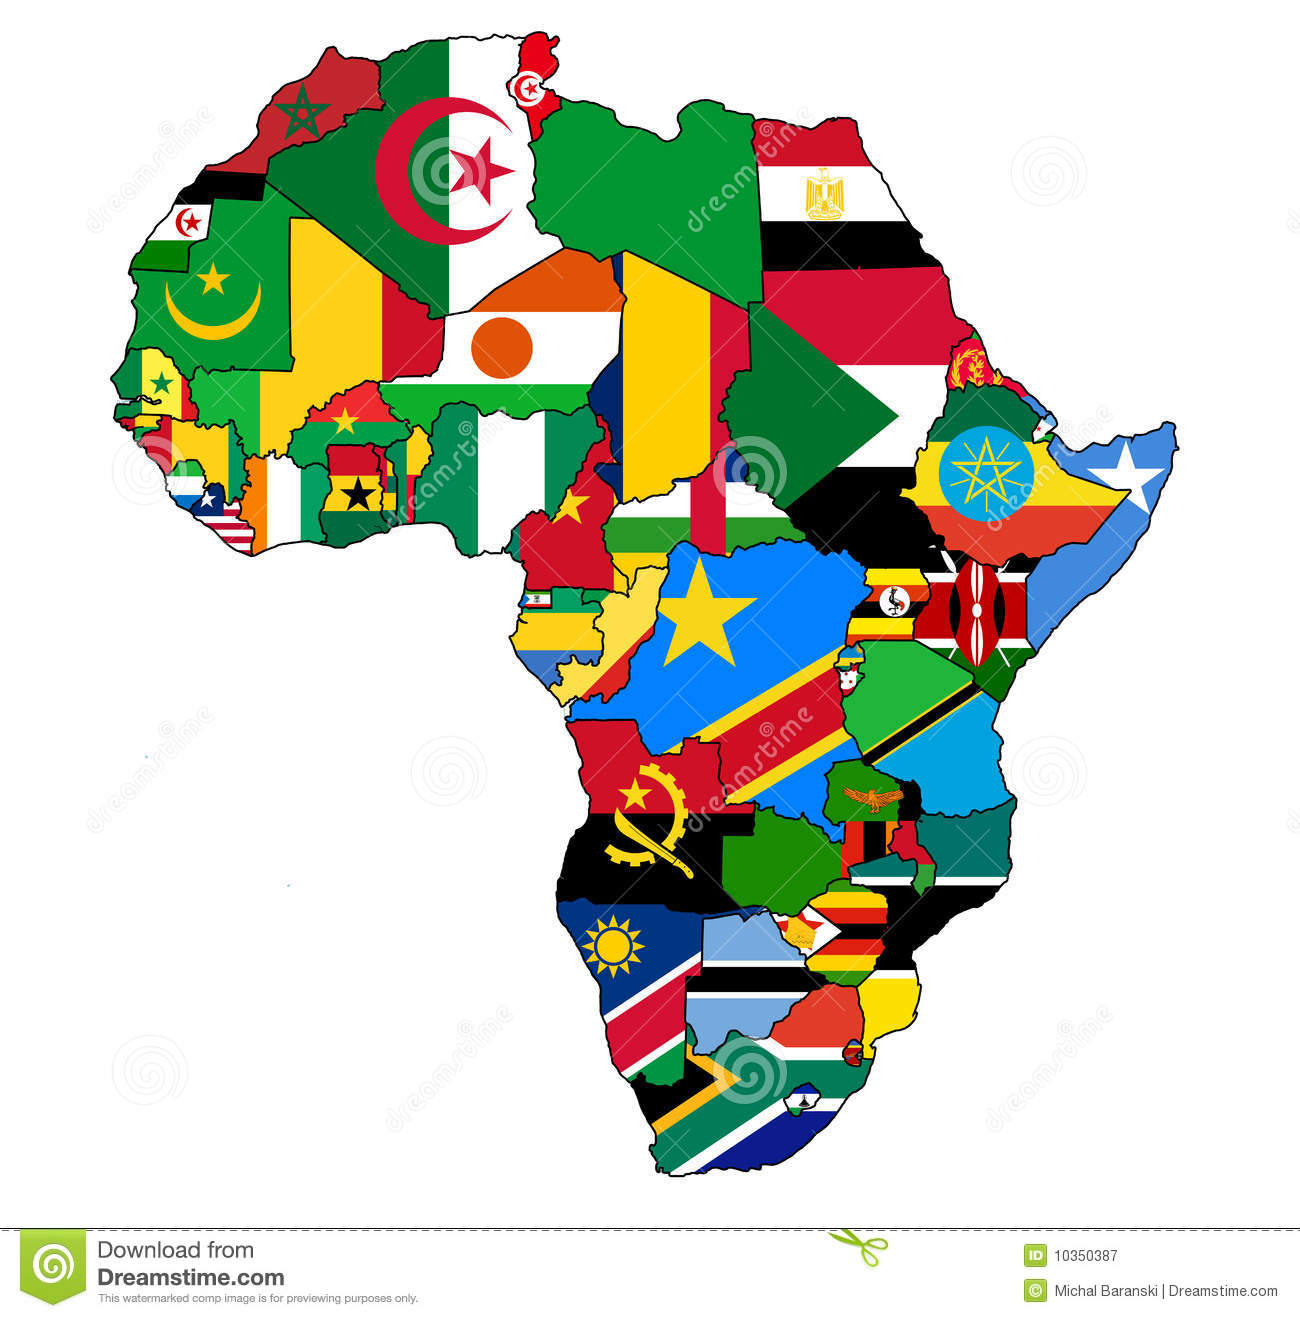 Africa map flag stock illustration. Illustration of poor - 10350387